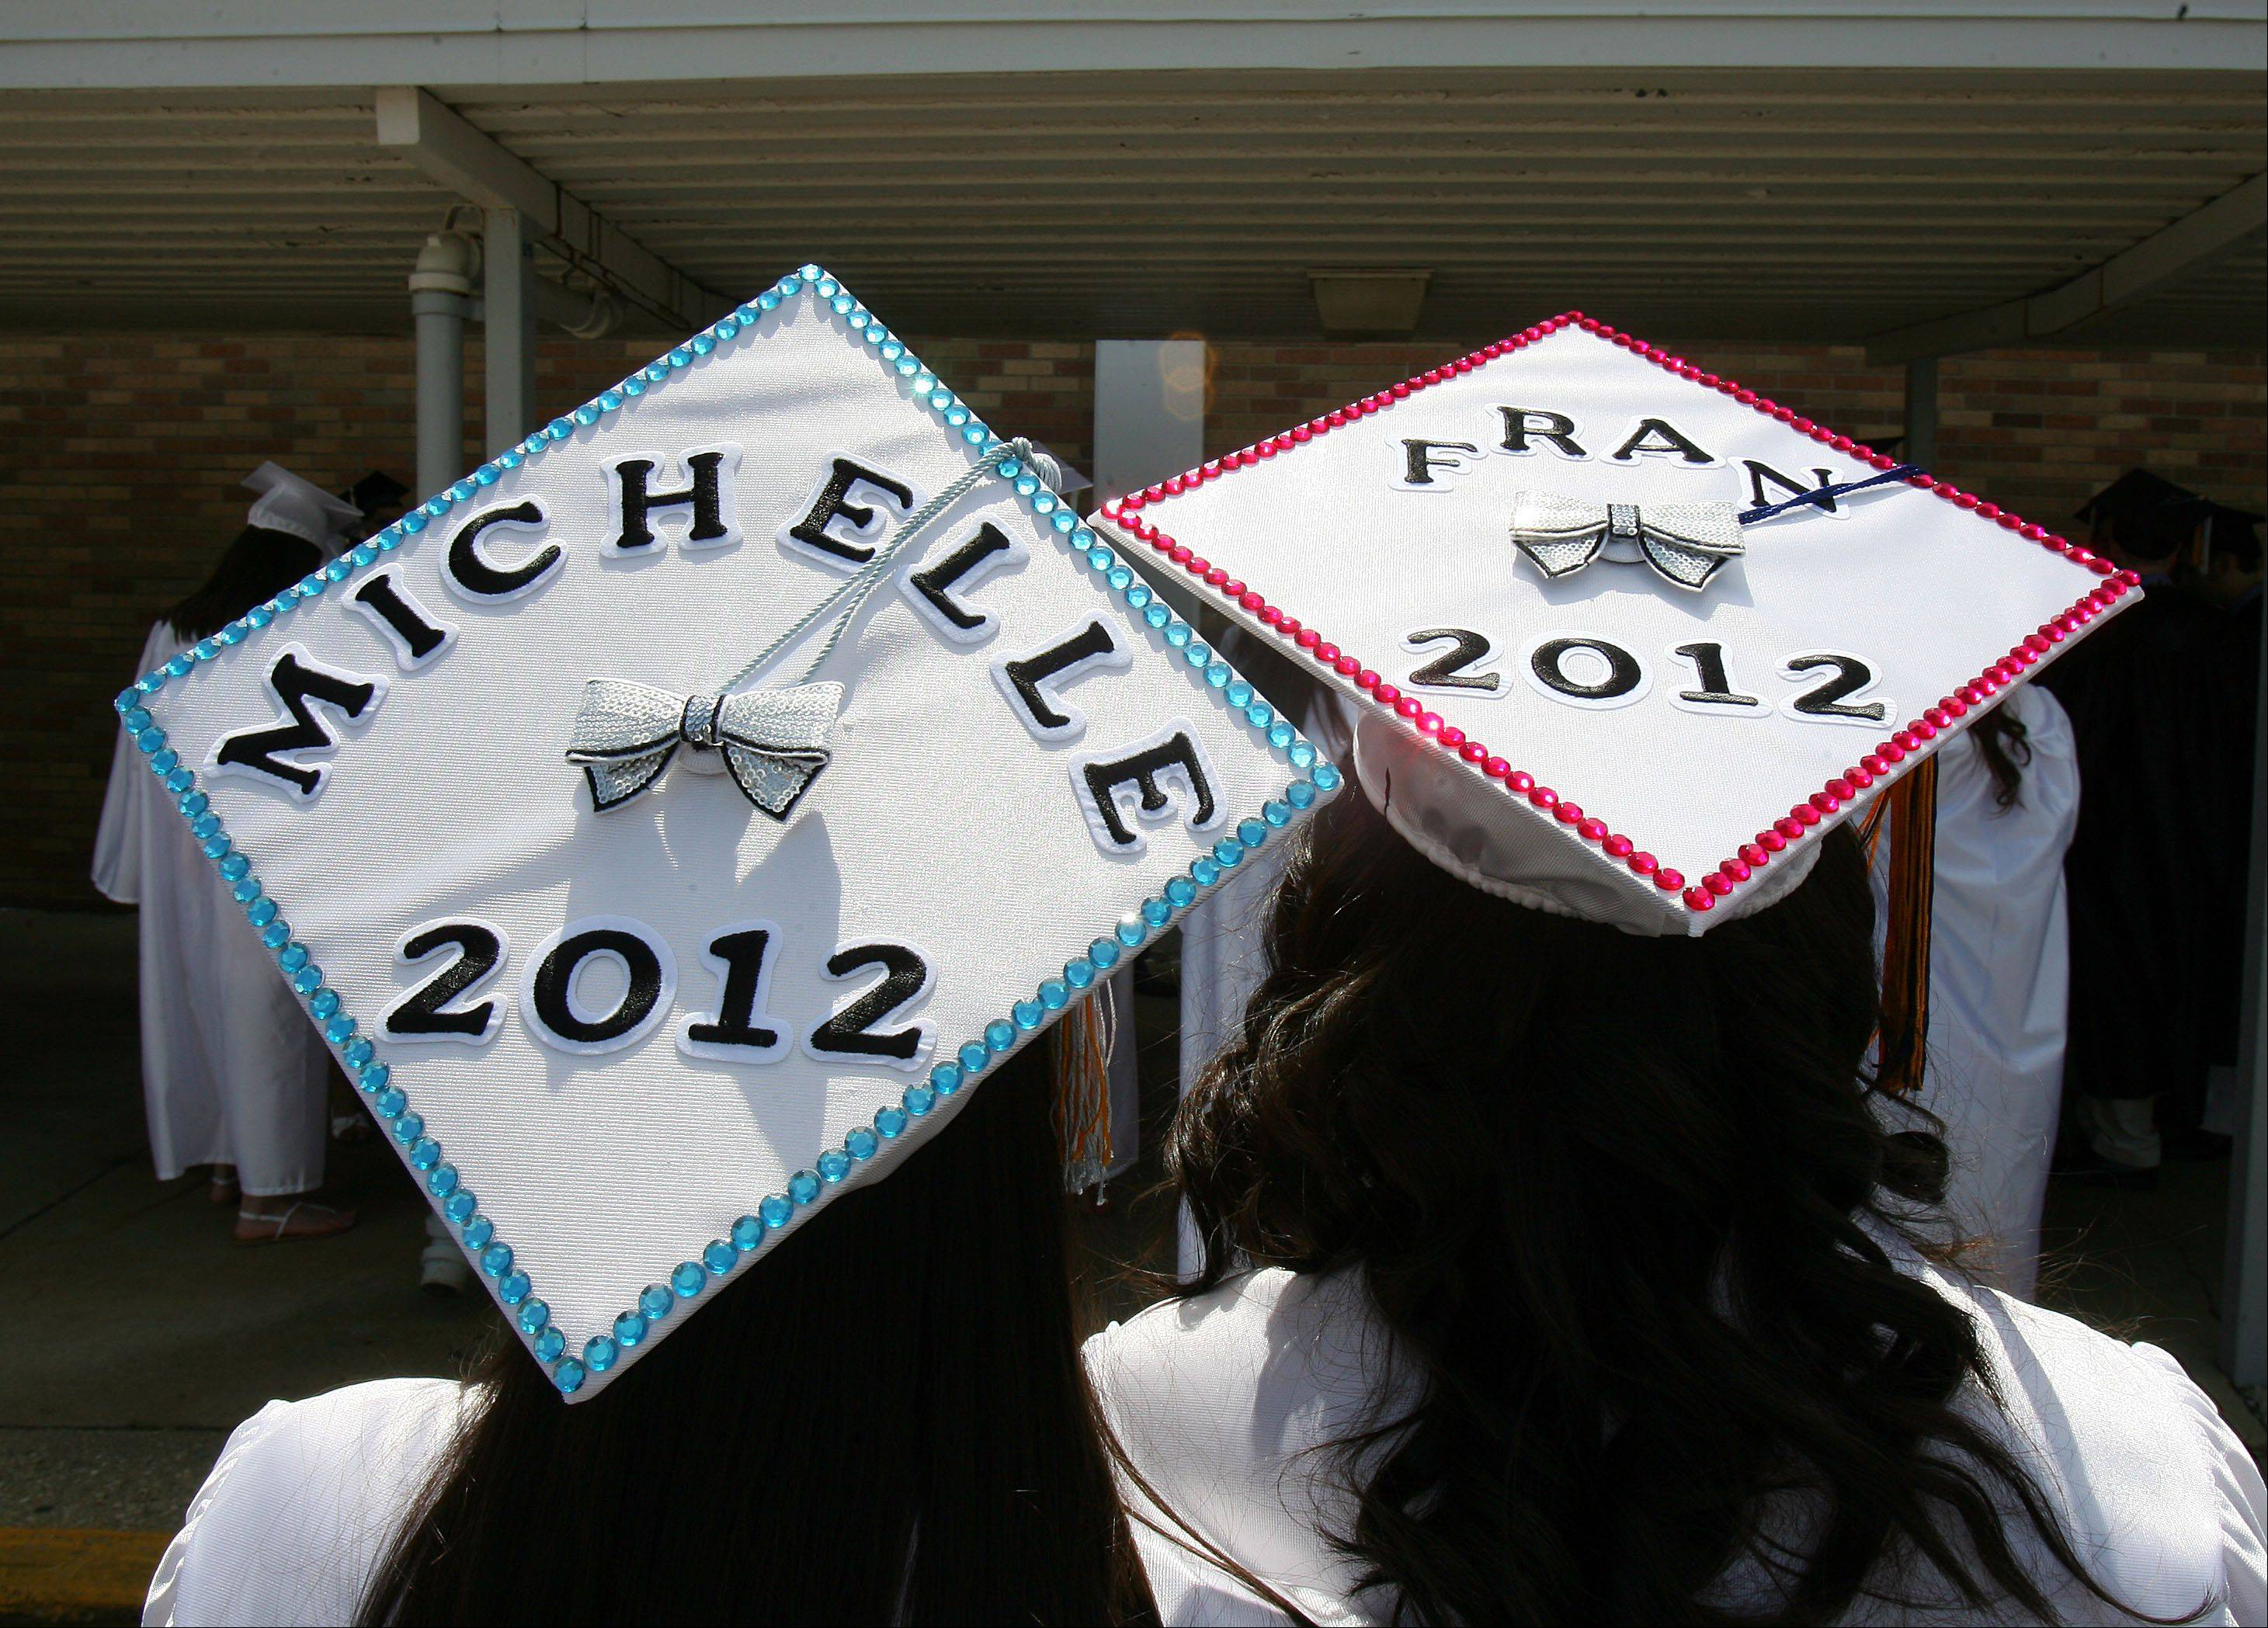 Michelle Madalinski and Francesca DeCastris show off their decorated caps before Sunday's graduation ceremony at Maine West High School Sunday in Des Plaines.